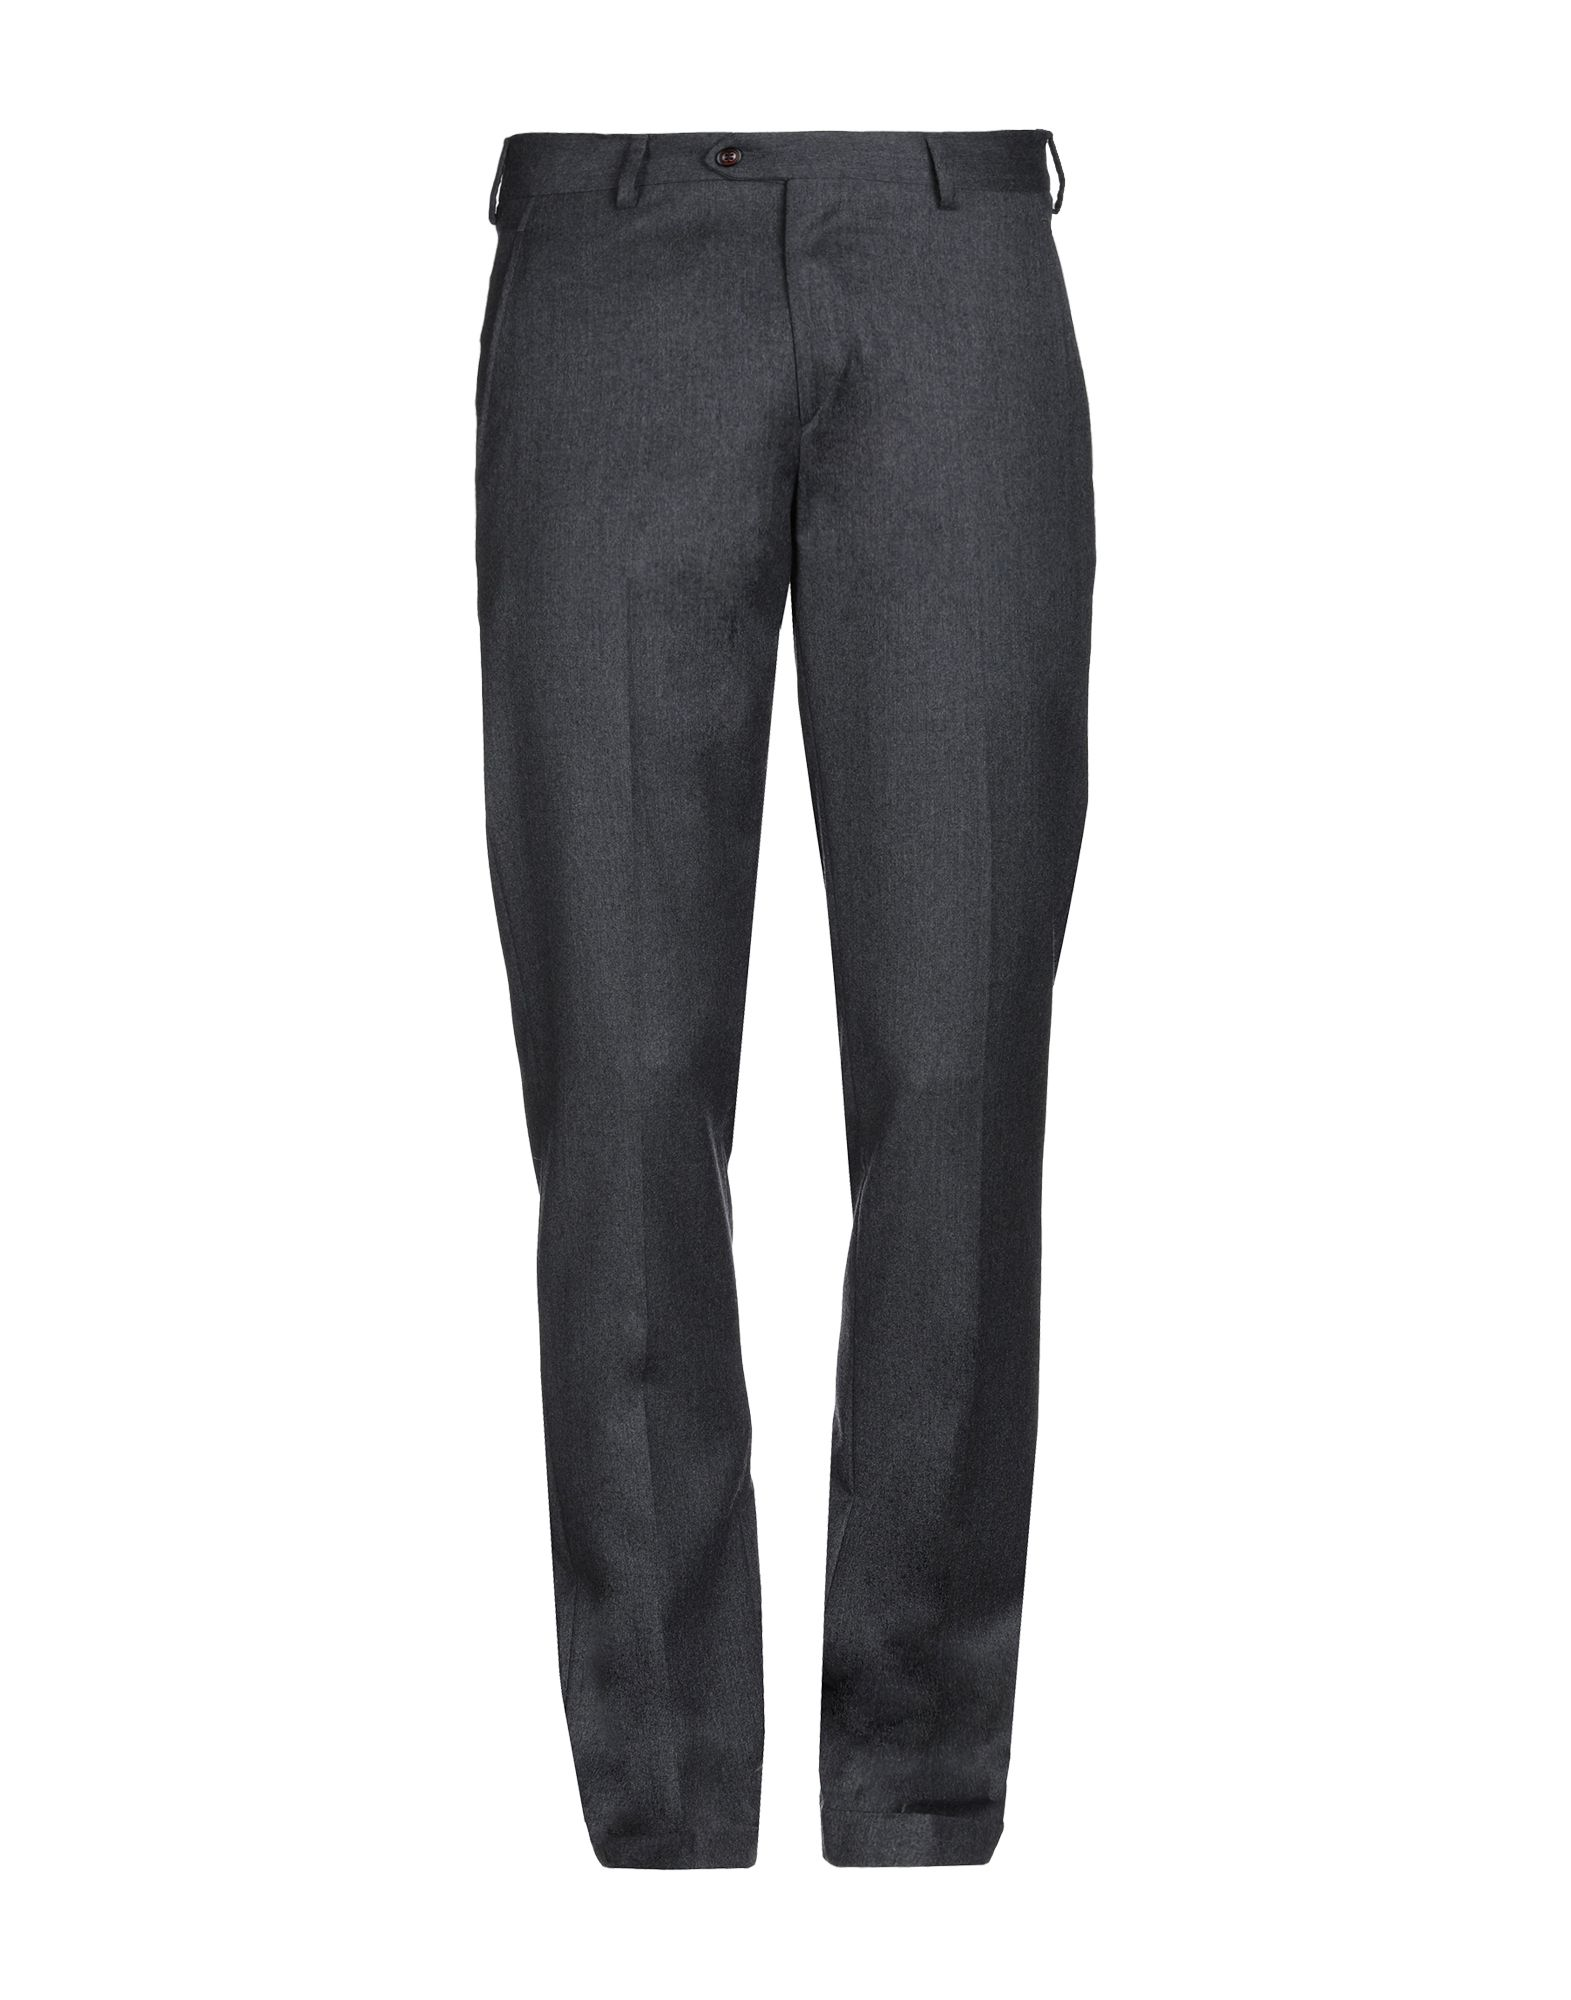 ALESSANDRO GILLES | ALESSANDRO GILLES Casual pants 13212112 | Goxip